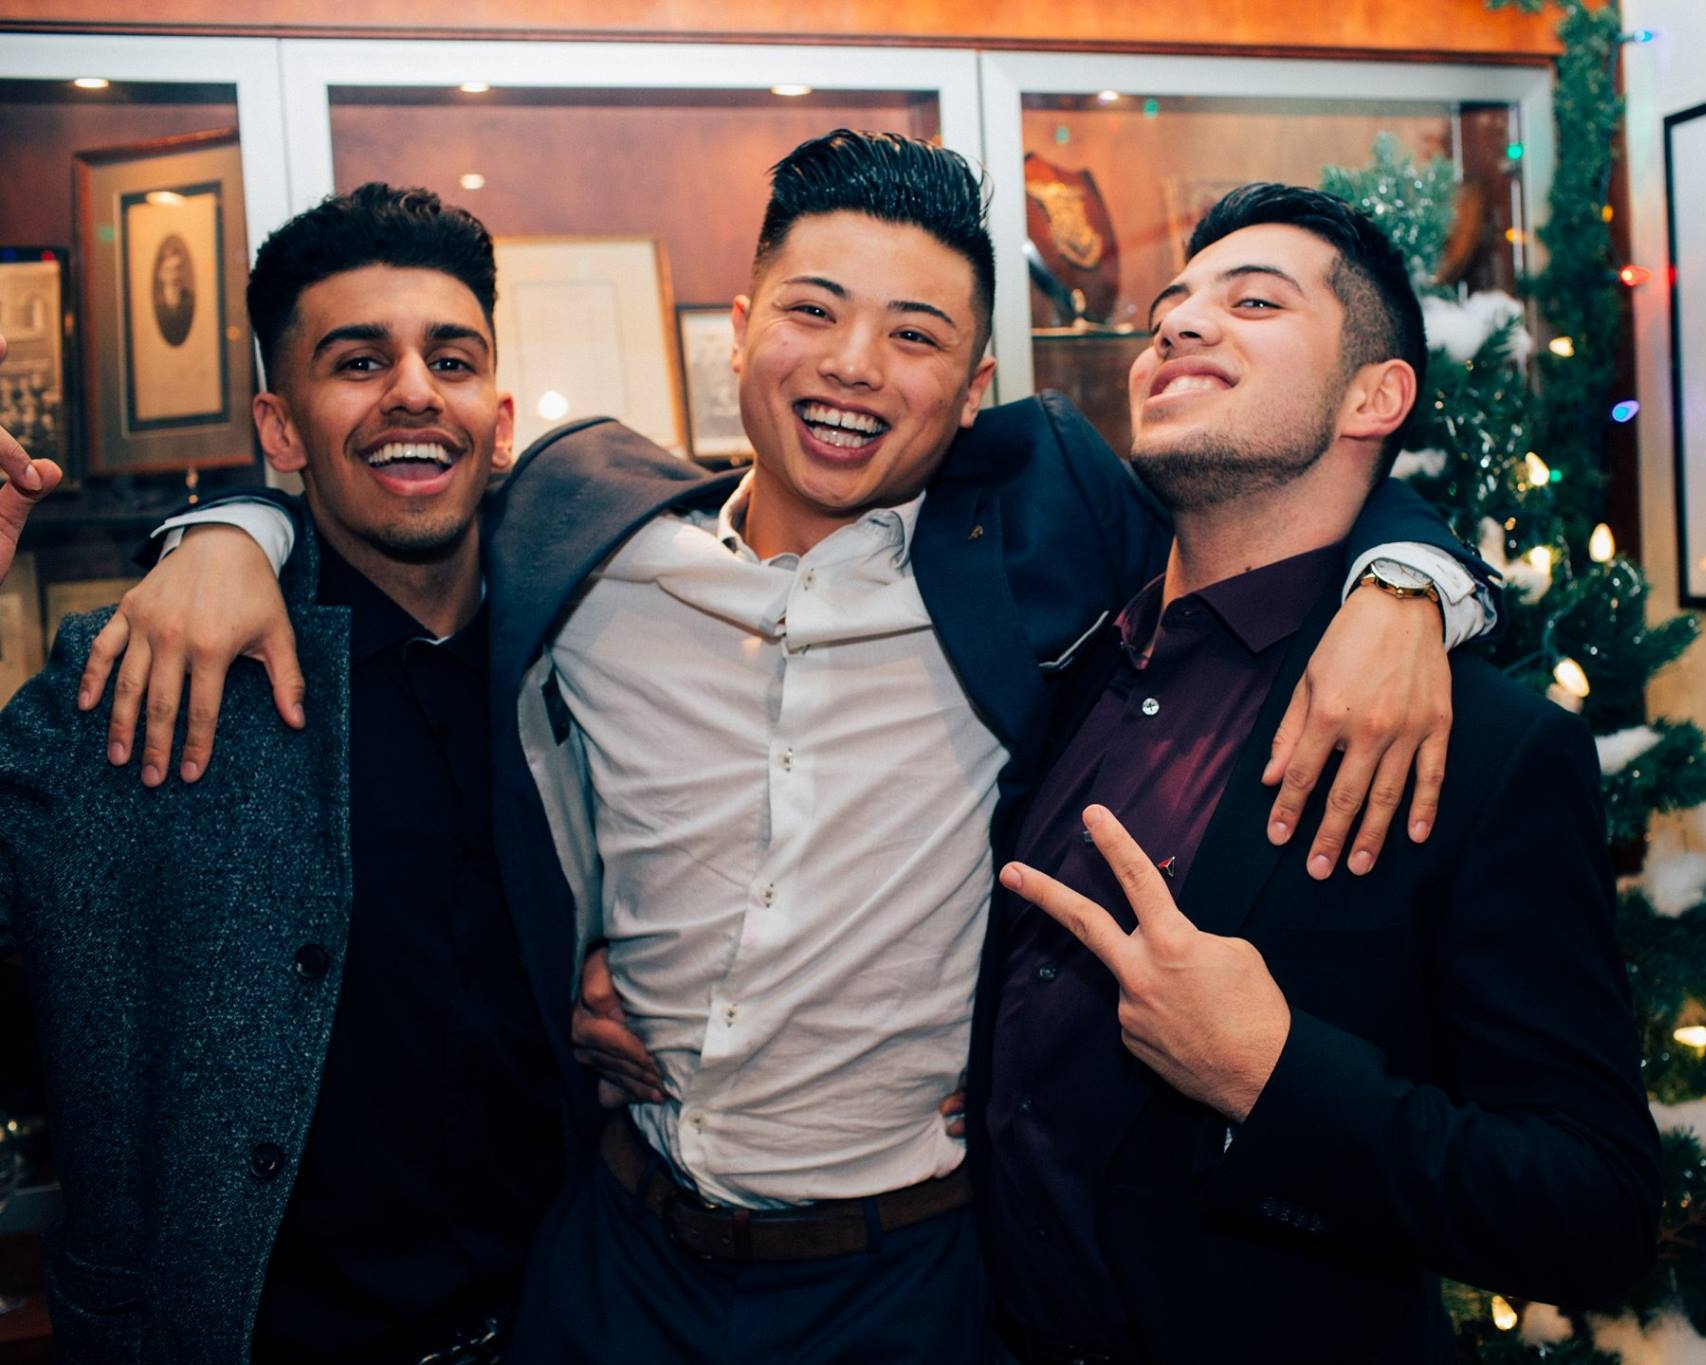 Brothers Chandra (PA '15), Torres (PA '14), and Kawasme (PA '16) at our annual Winter Semiformal